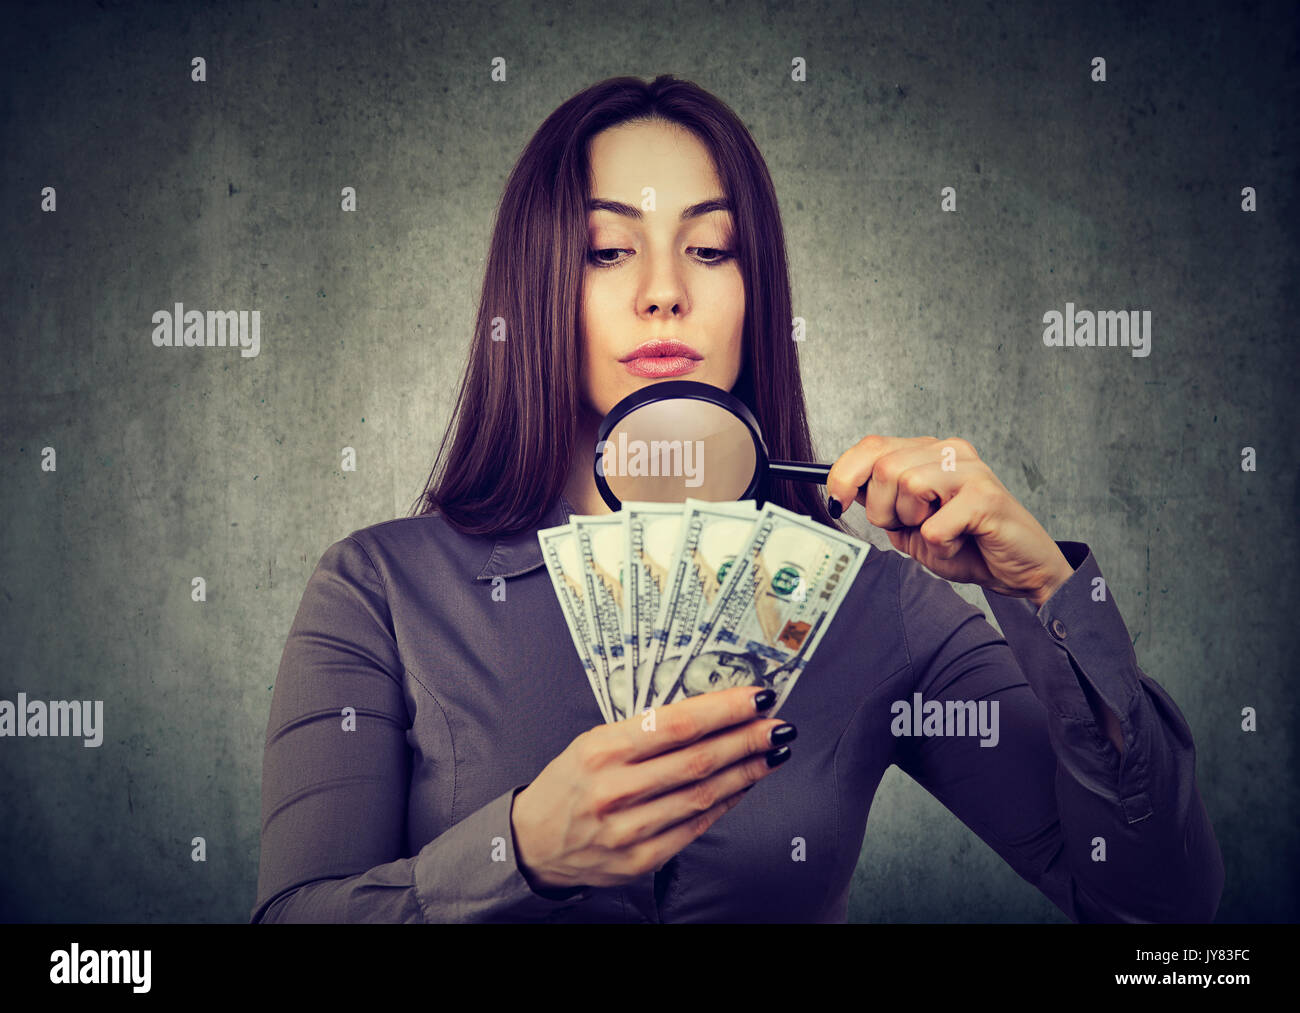 Young woman looking at one hundred dollar bills through magnifying glass - Stock Image